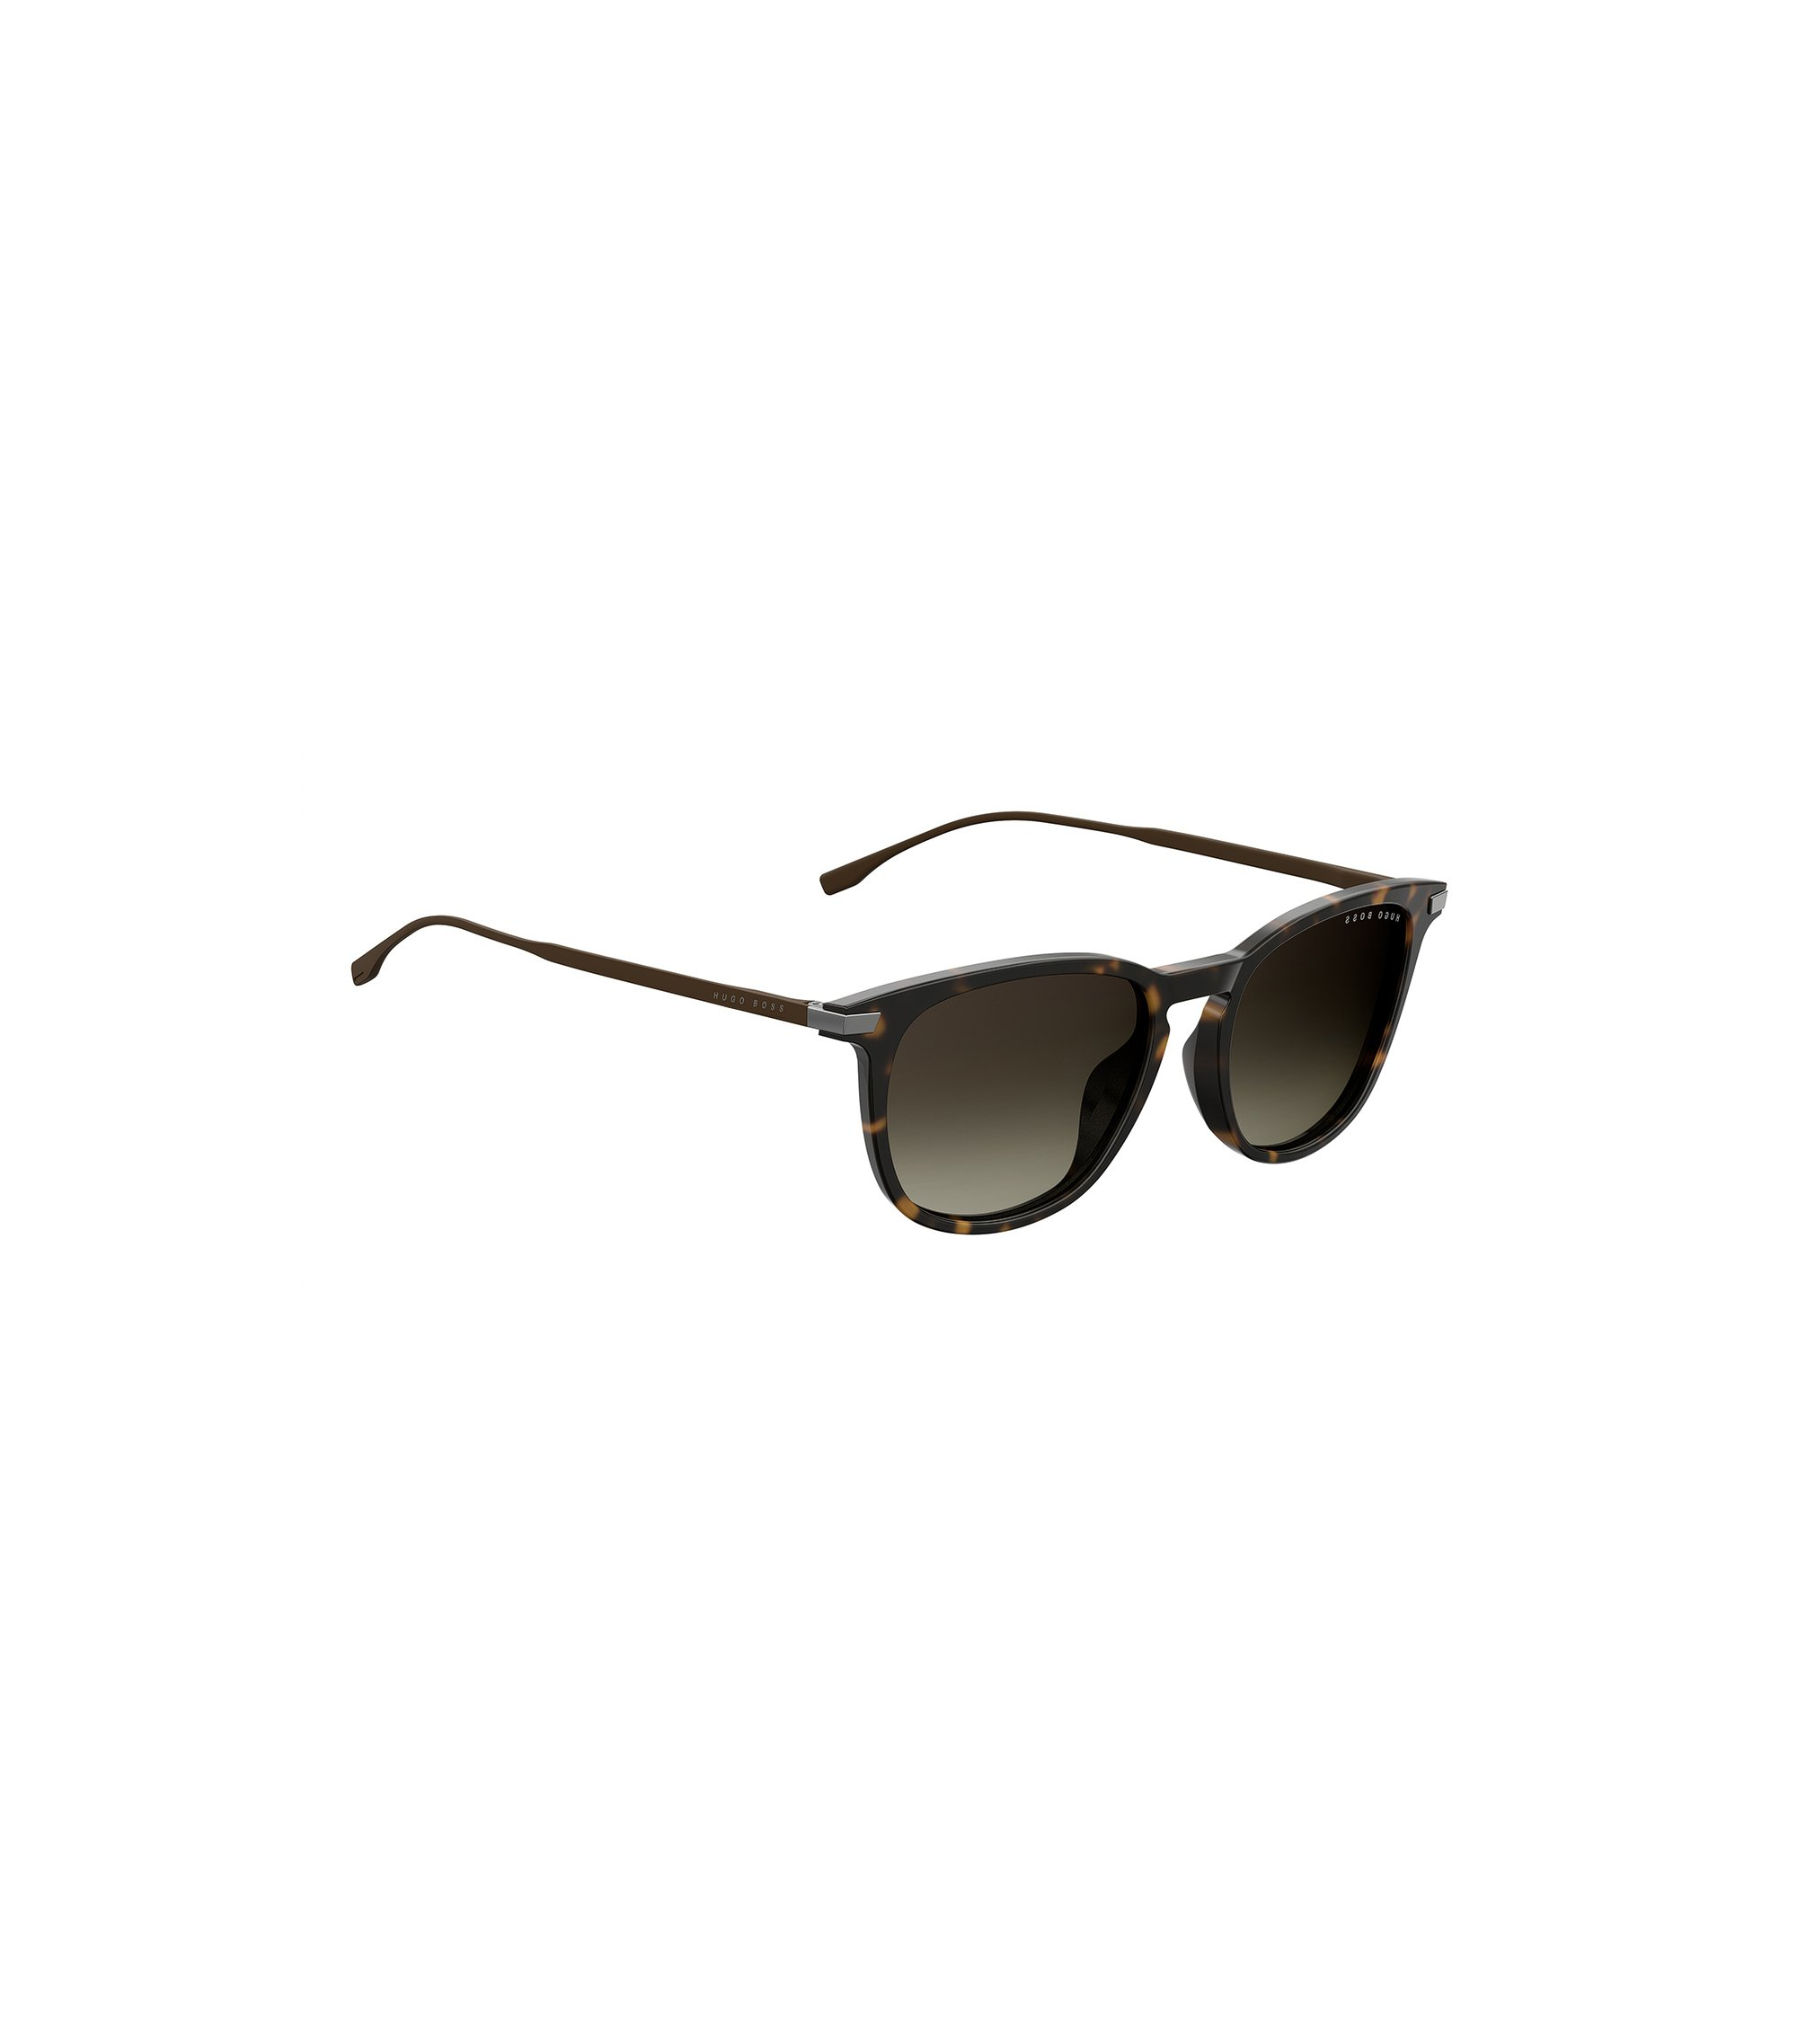 Havana-pattern sunglasses with lightweight metal temples, Dark Brown